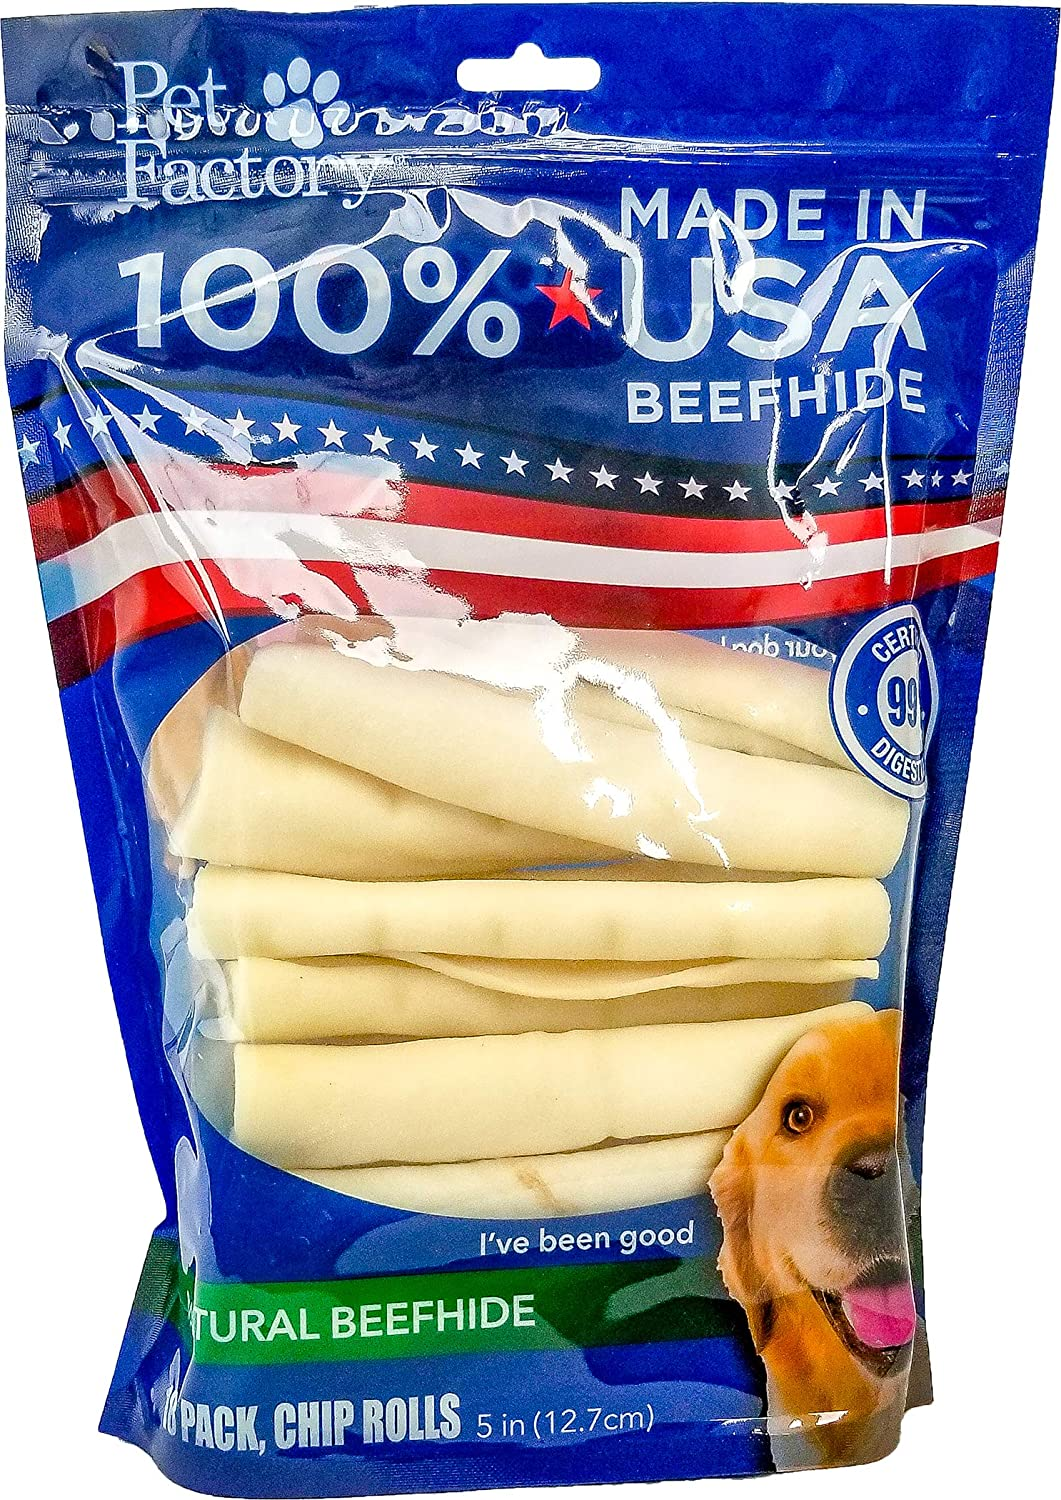 Pet Factory U.S.A. Beef Hide Chip Rolls Chews for Dogs (18 Pack), Small/5